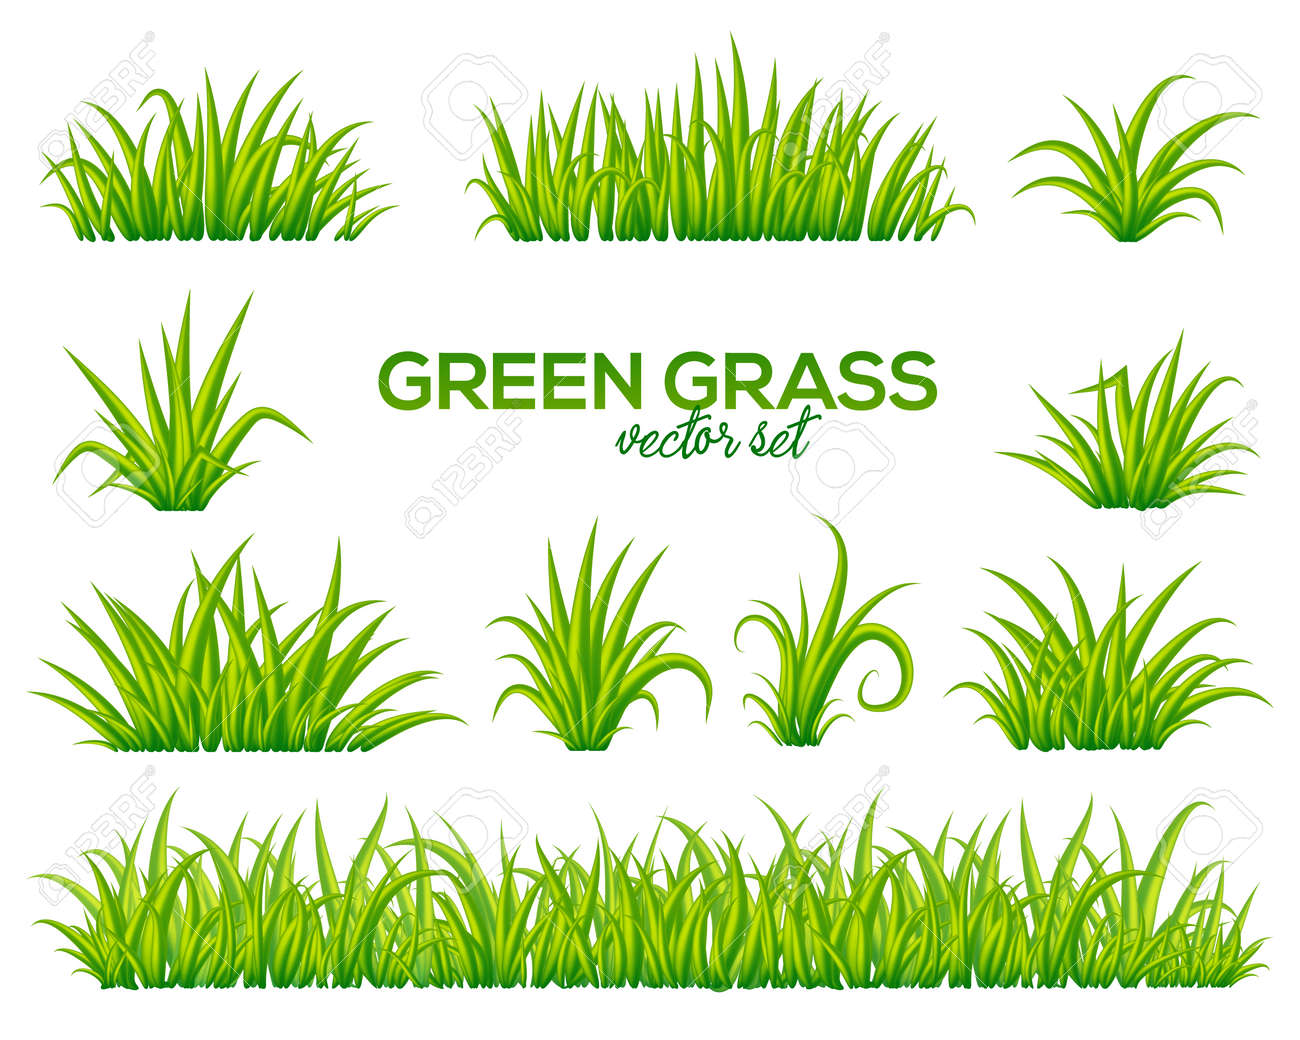 Vector tufts of grass set isolated on white background - 78028105